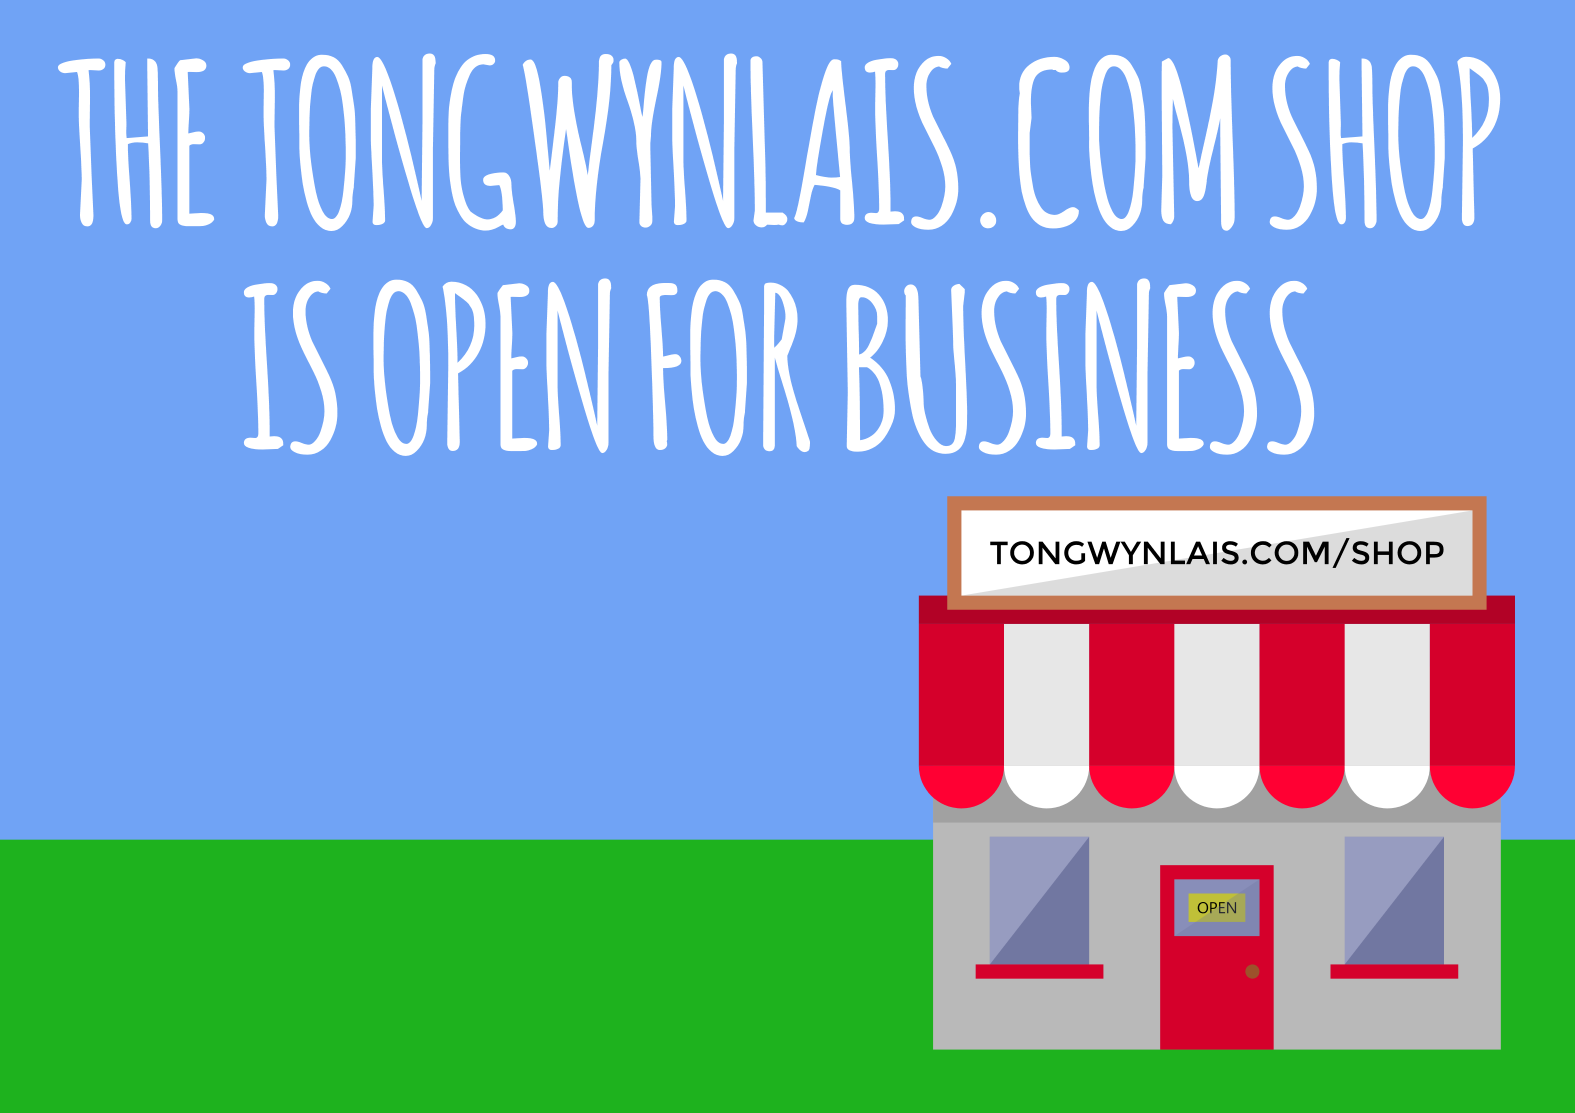 The Tongwynlais.com Shop is Open for Business